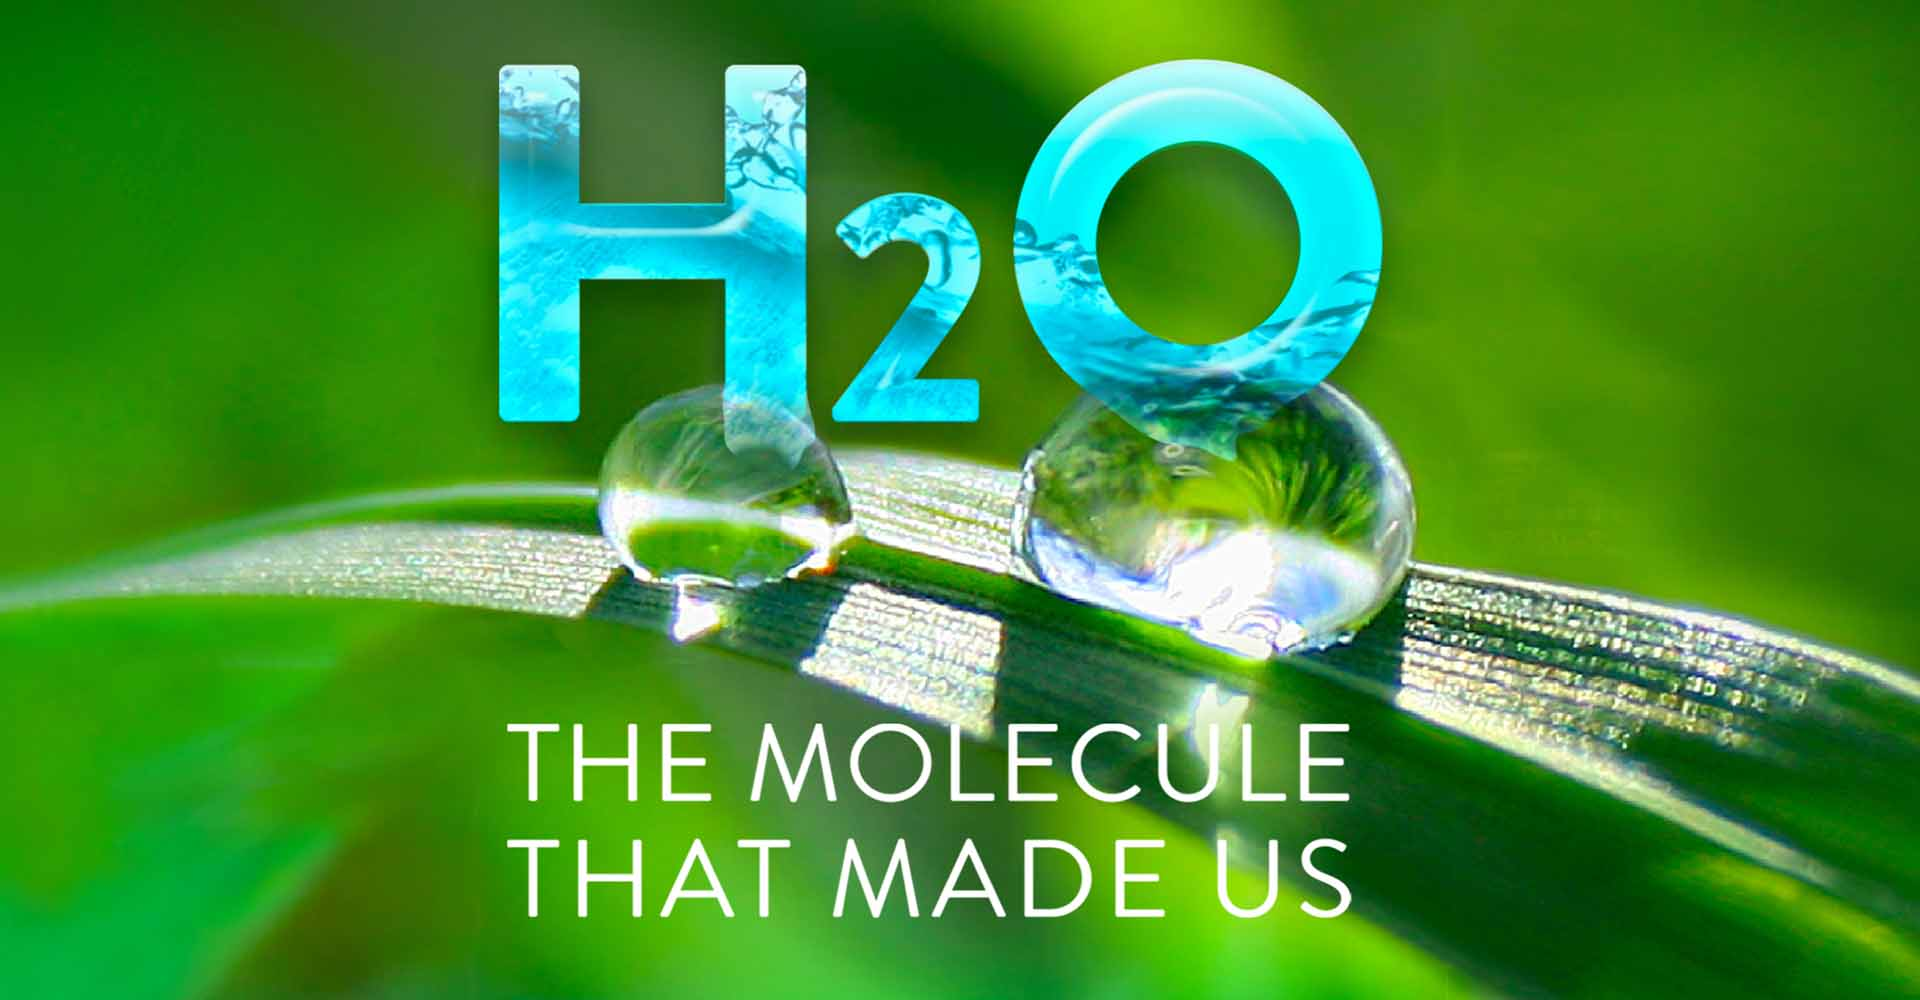 The Molecule That Made Us